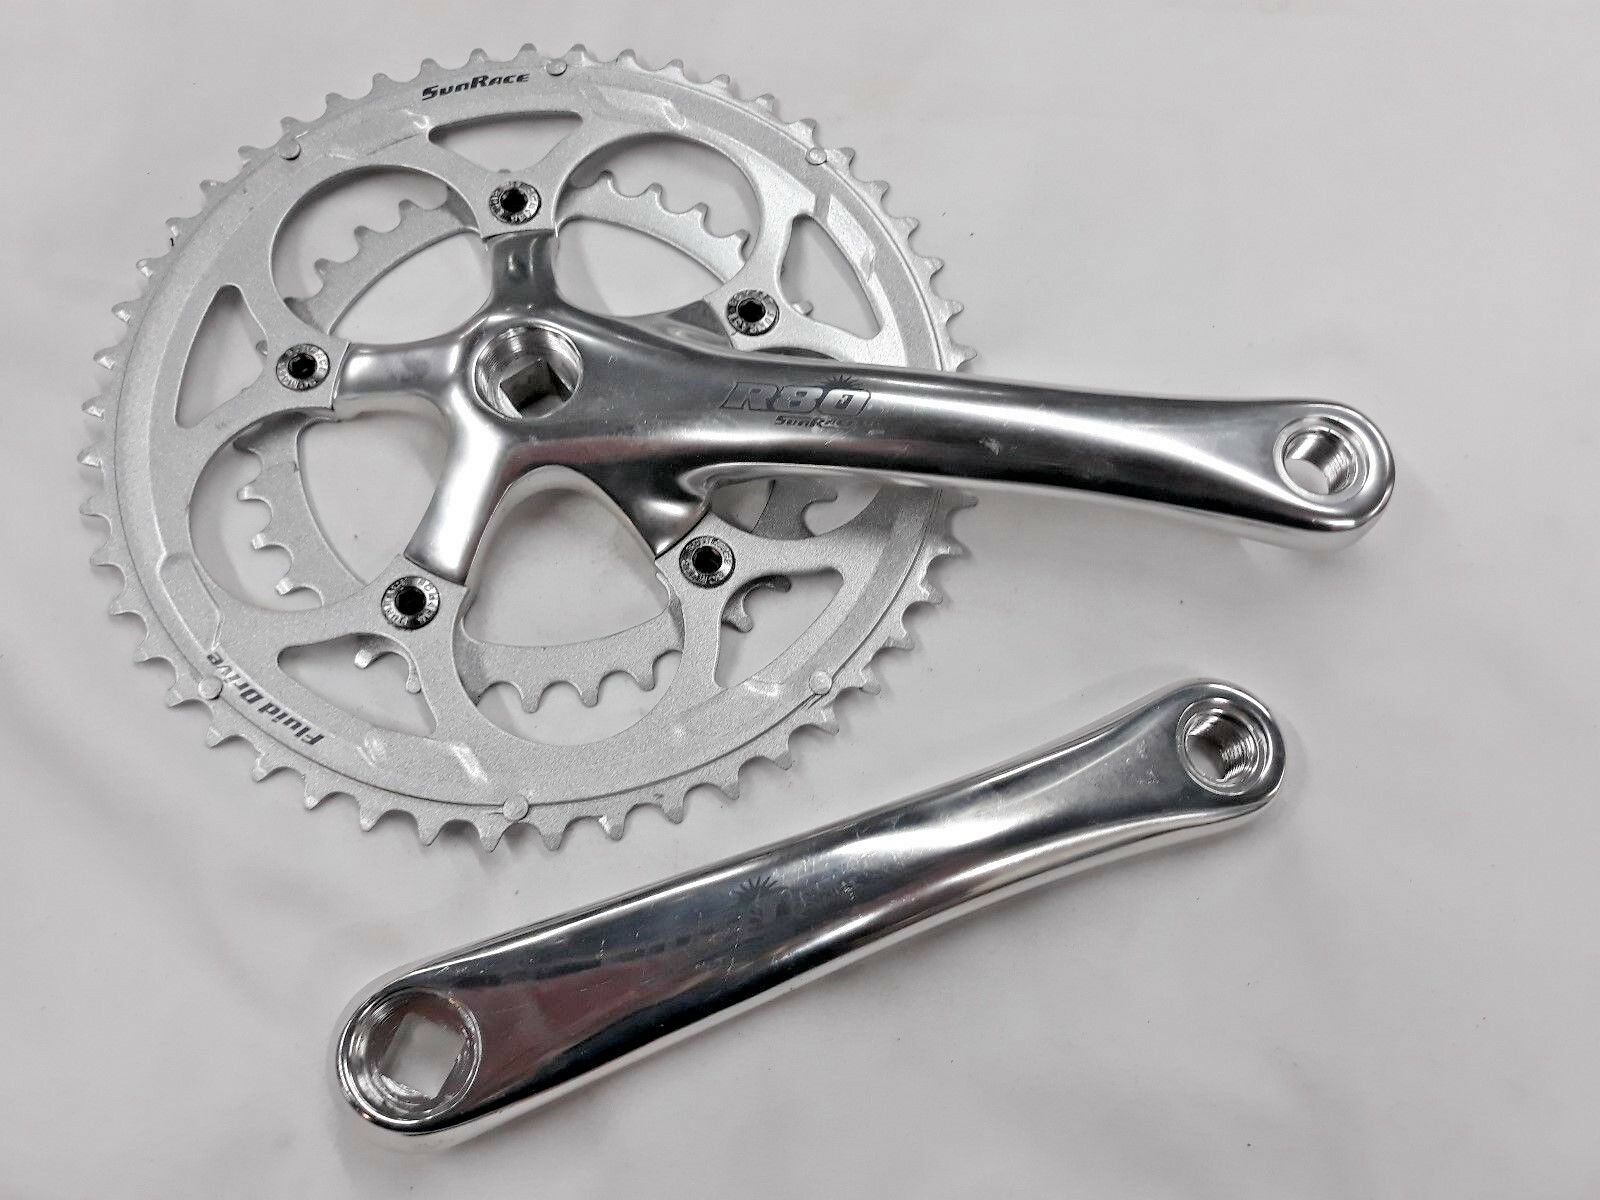 USED SUNRACE DOUBLE  RING CRANKSET 170MM  floor price